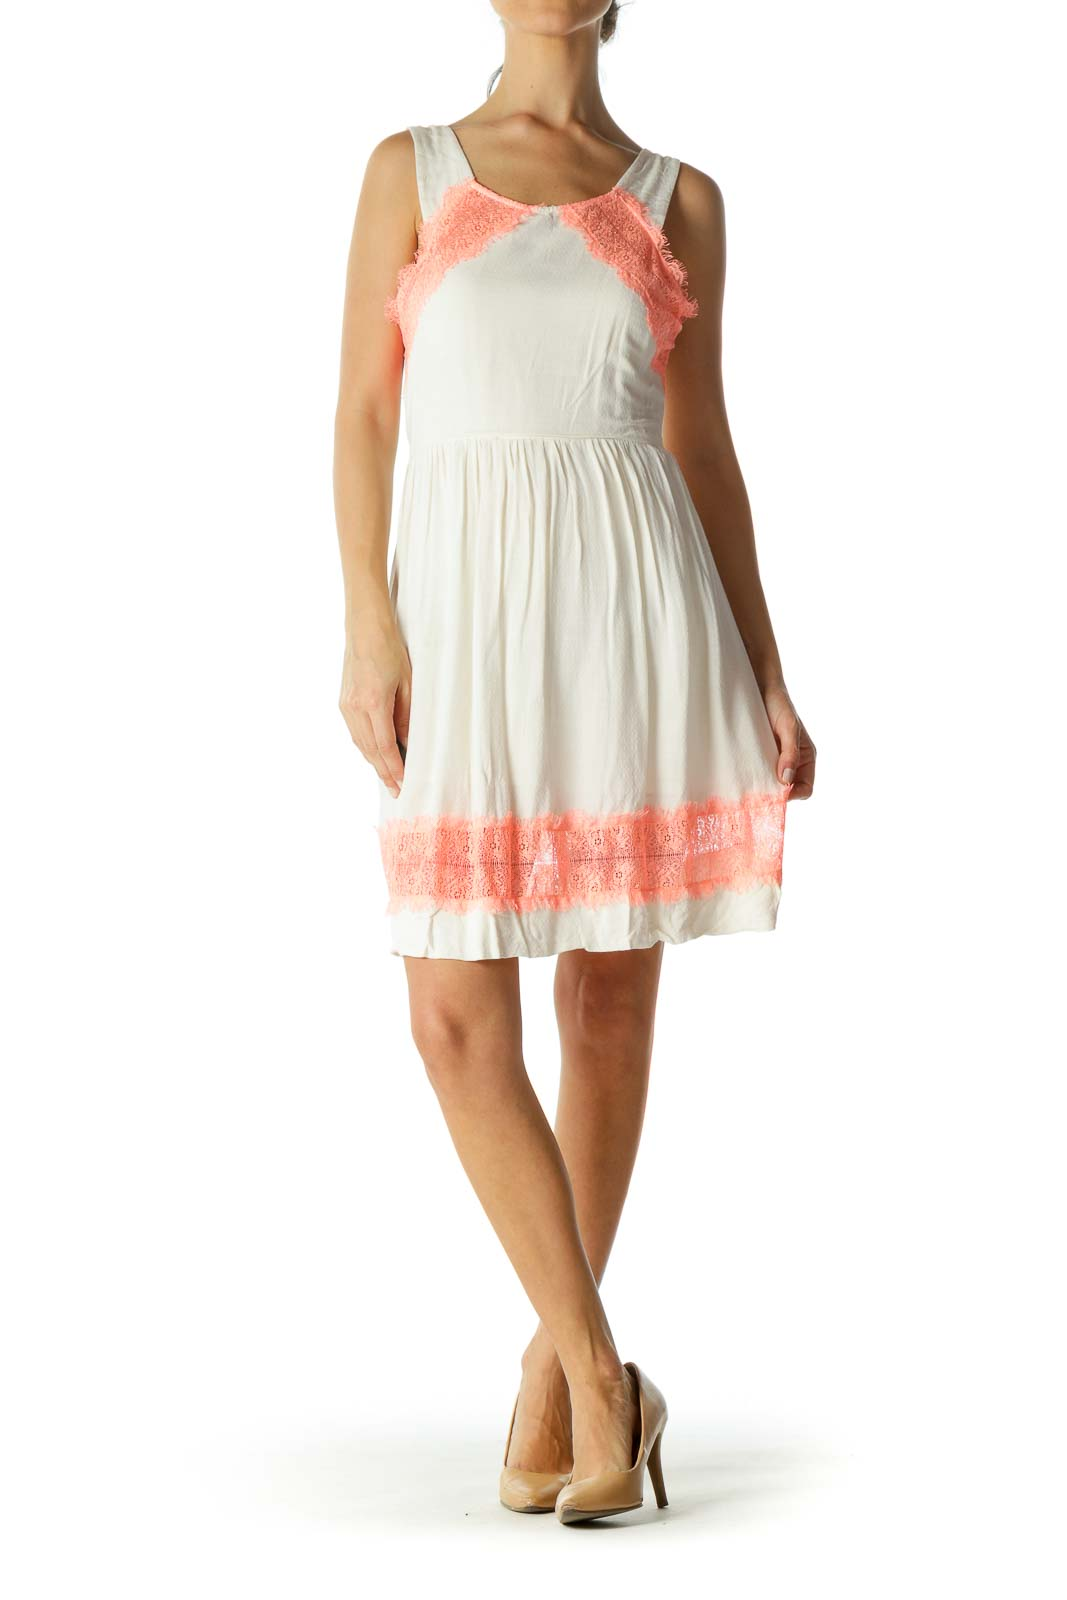 Cream Bright Orange Round Neck Knit Lace Trim Day Dress